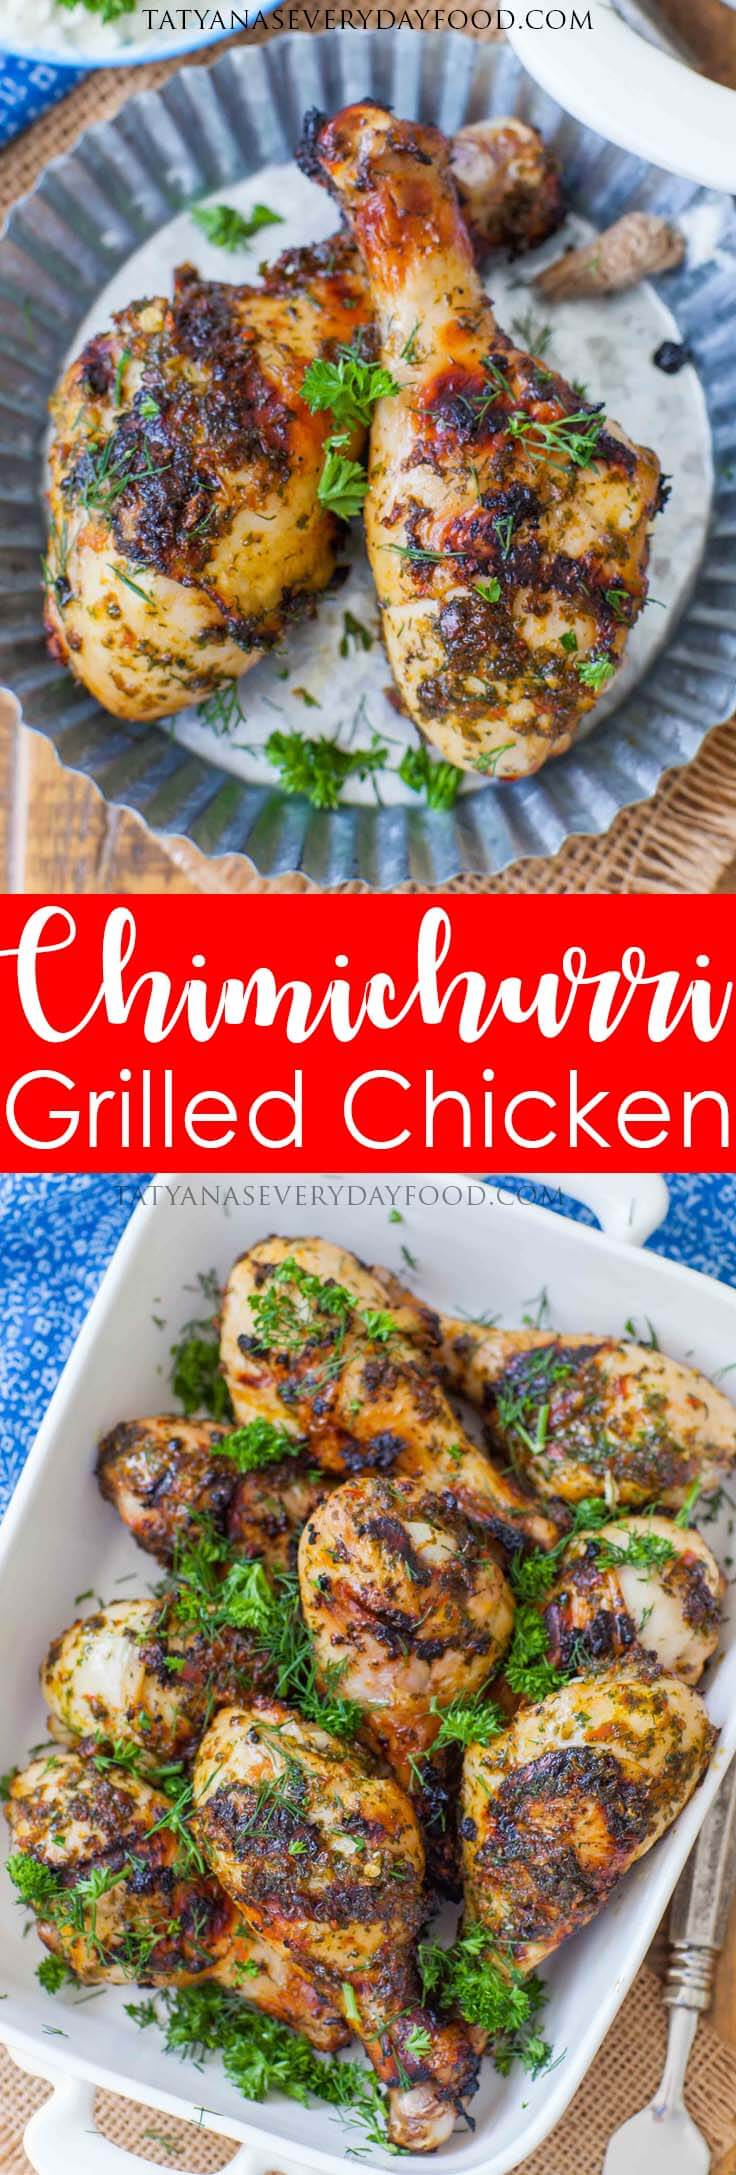 Grilled Chimichurri Chicken Drumsticks with video recipe